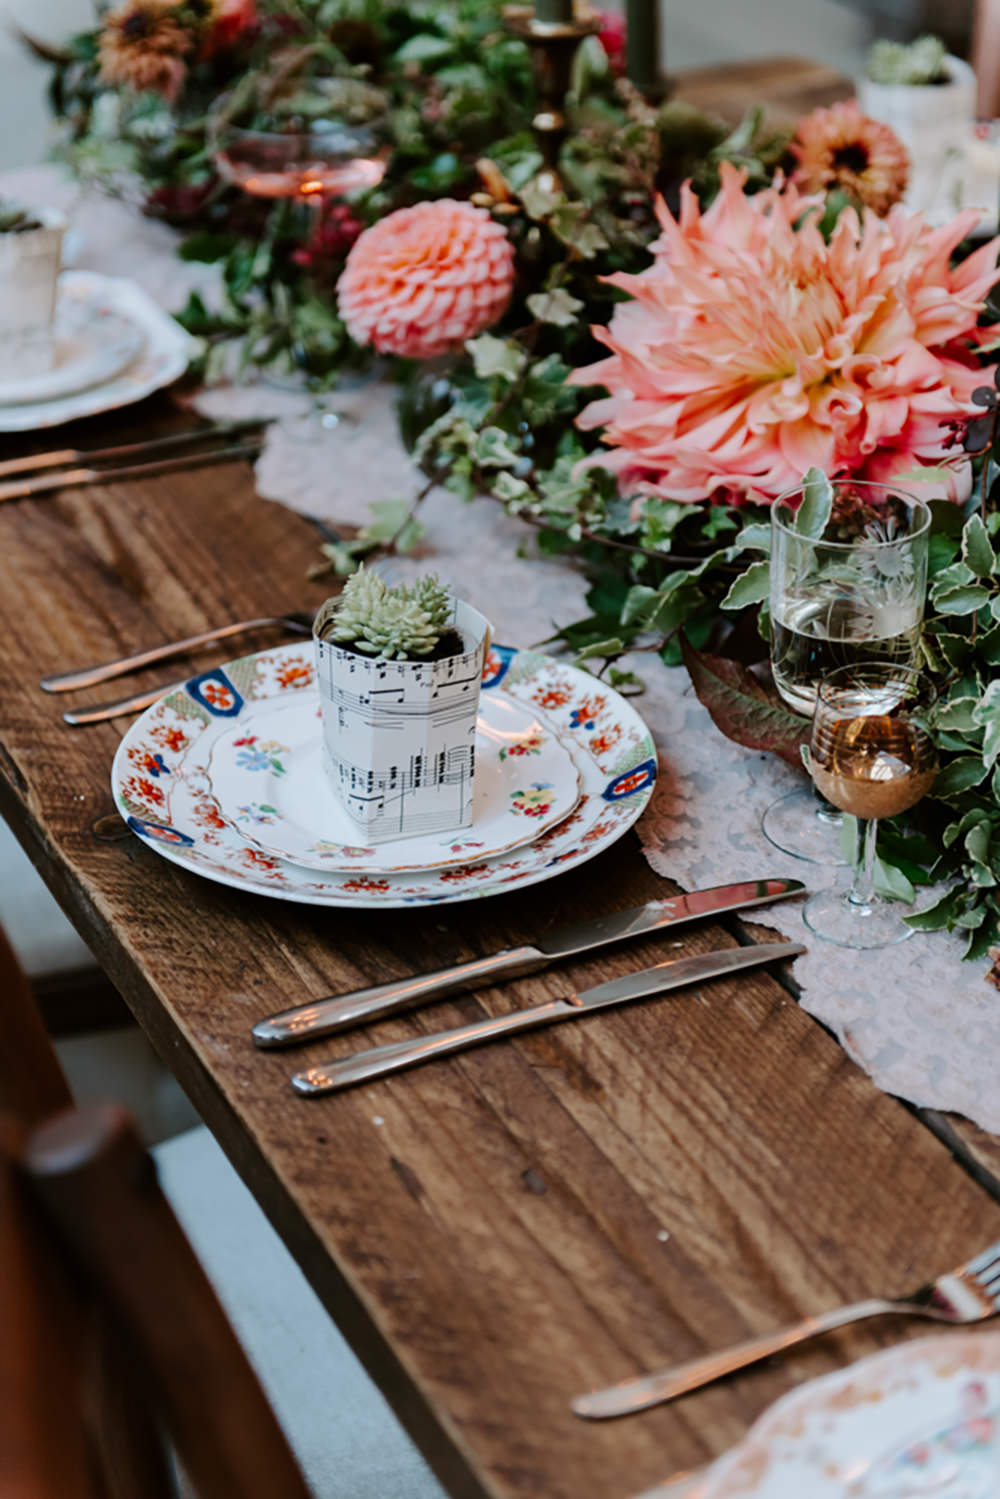 Place Setting Plate Floral Decor Ethical Wedding Ideas Sadie Osborne Photography